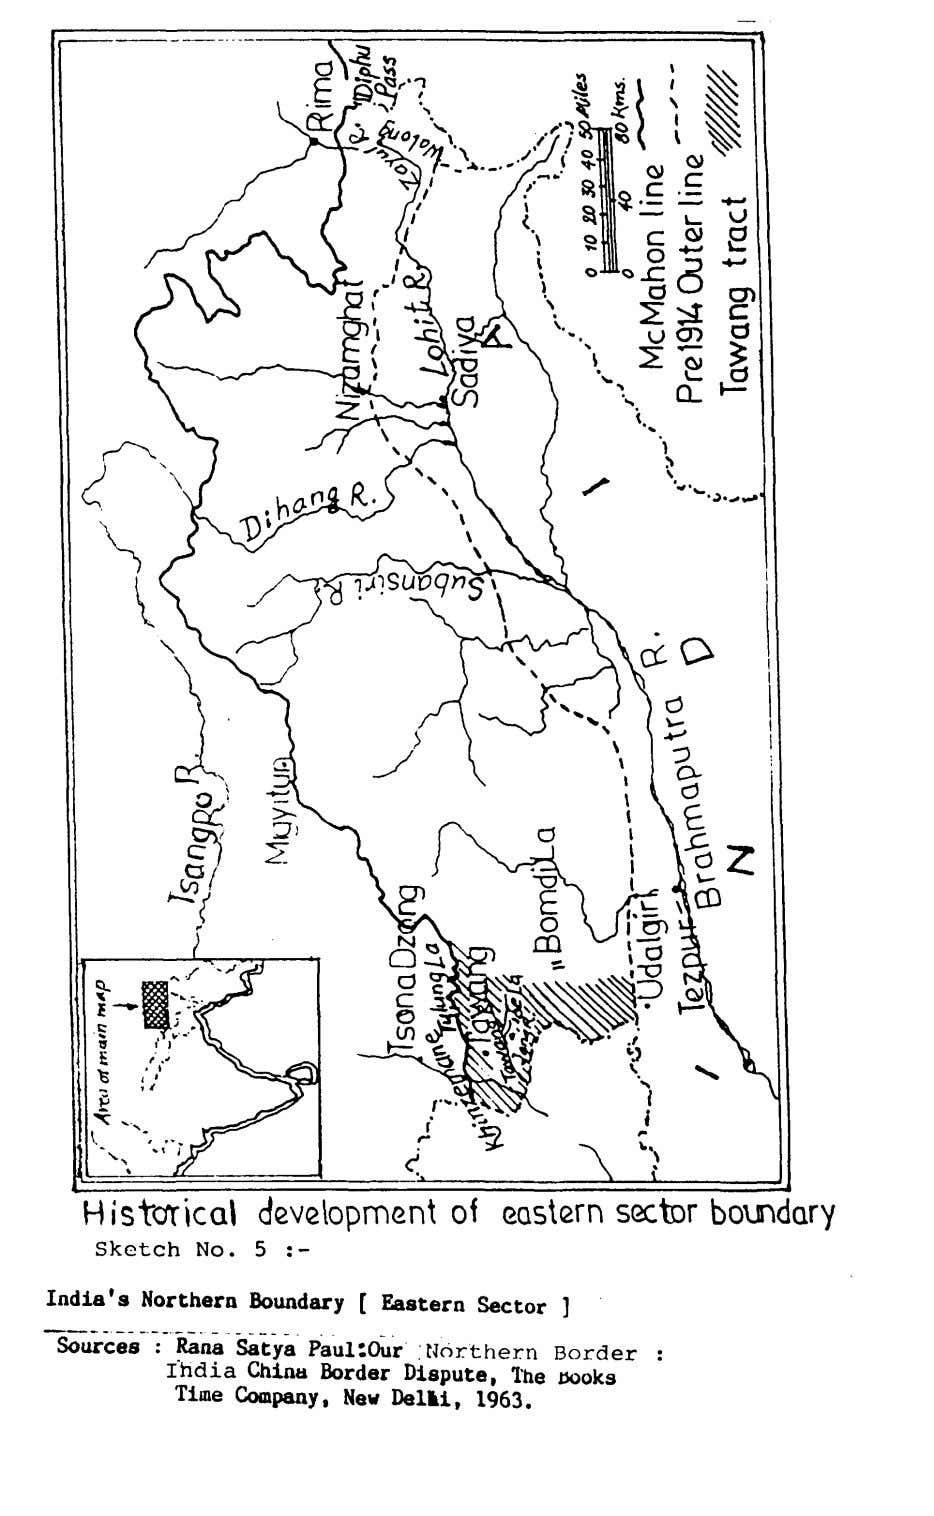 Histcrrical development of eastern sector boundary Sketch No. 5 : - India's Northern Boundary [